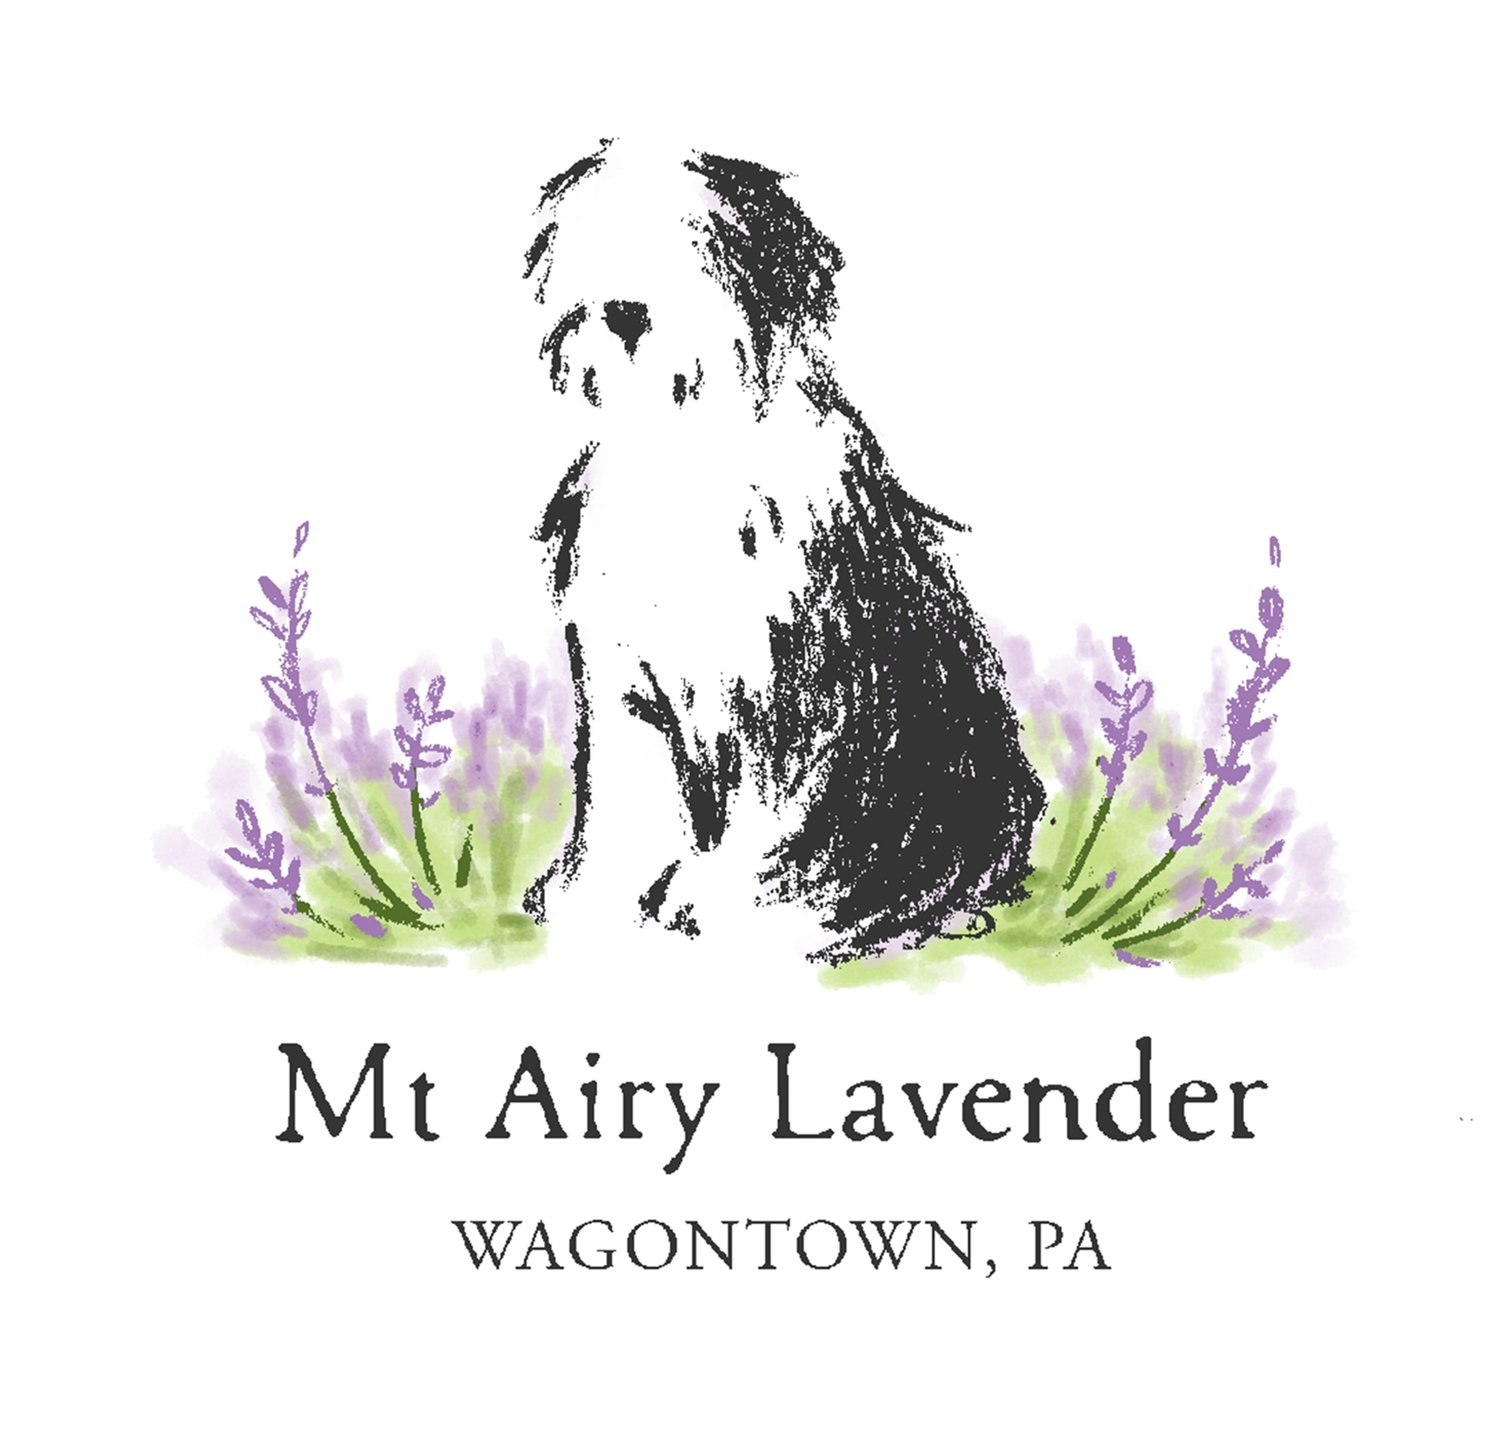 Mt Airy Lavender